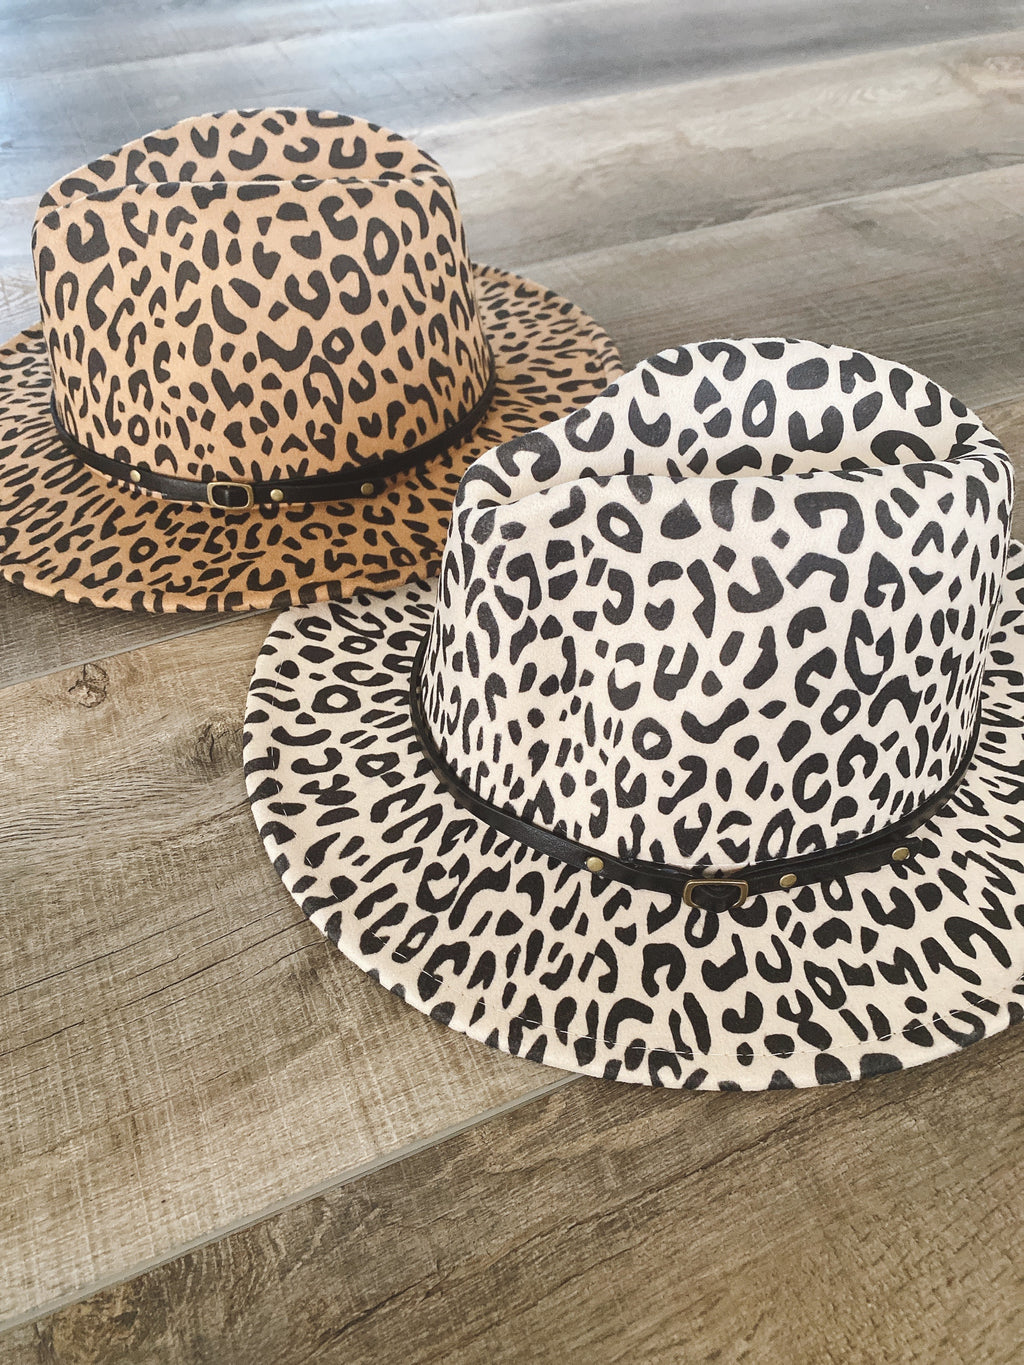 The Leopard Fedora